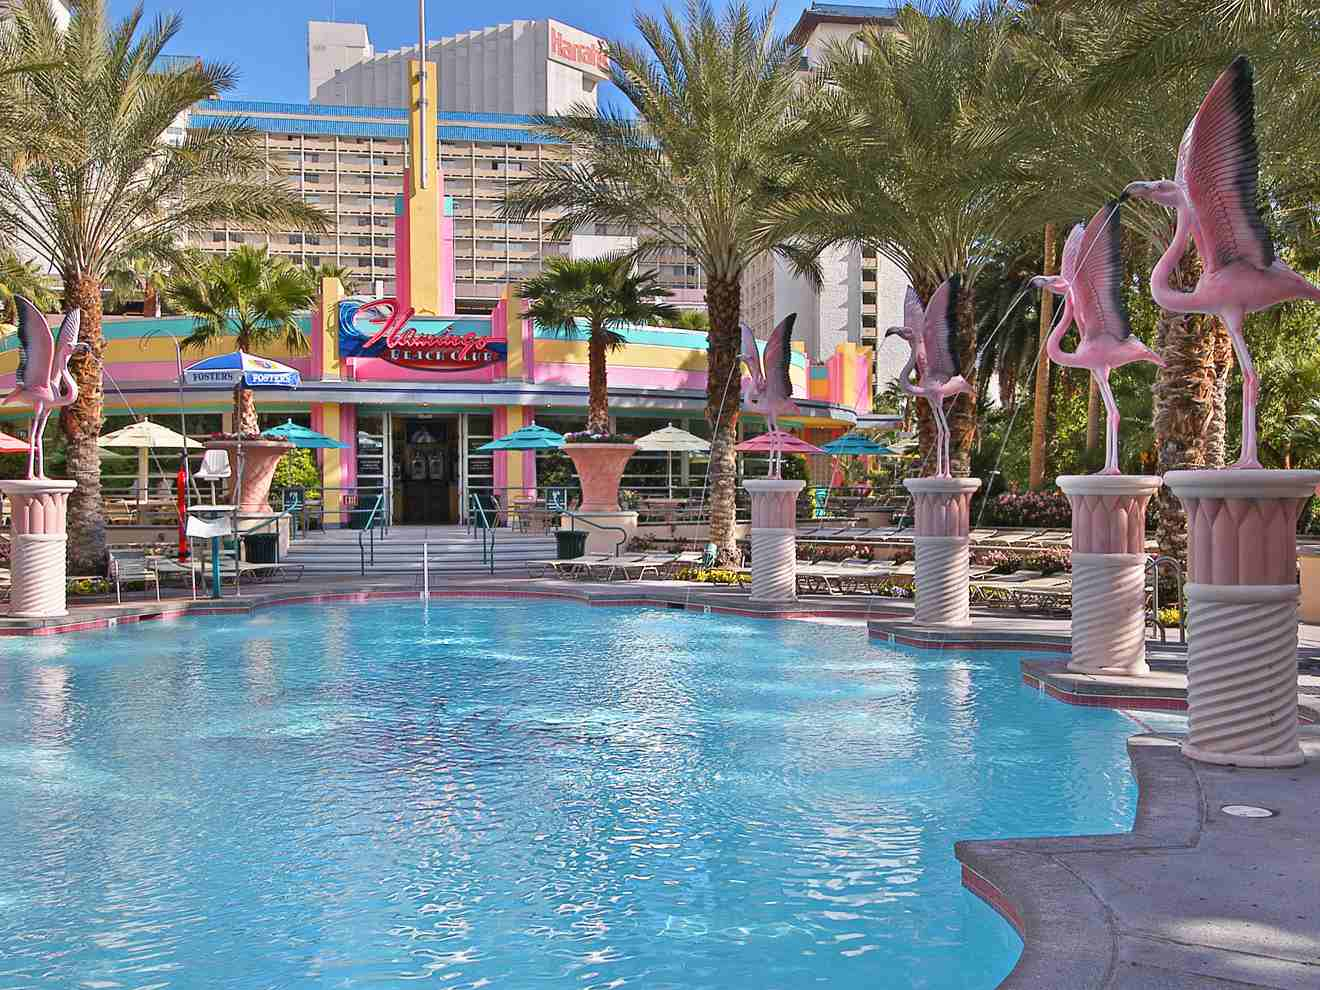 A Guide to the Swimming Pools of the Flamingo Las Vegas